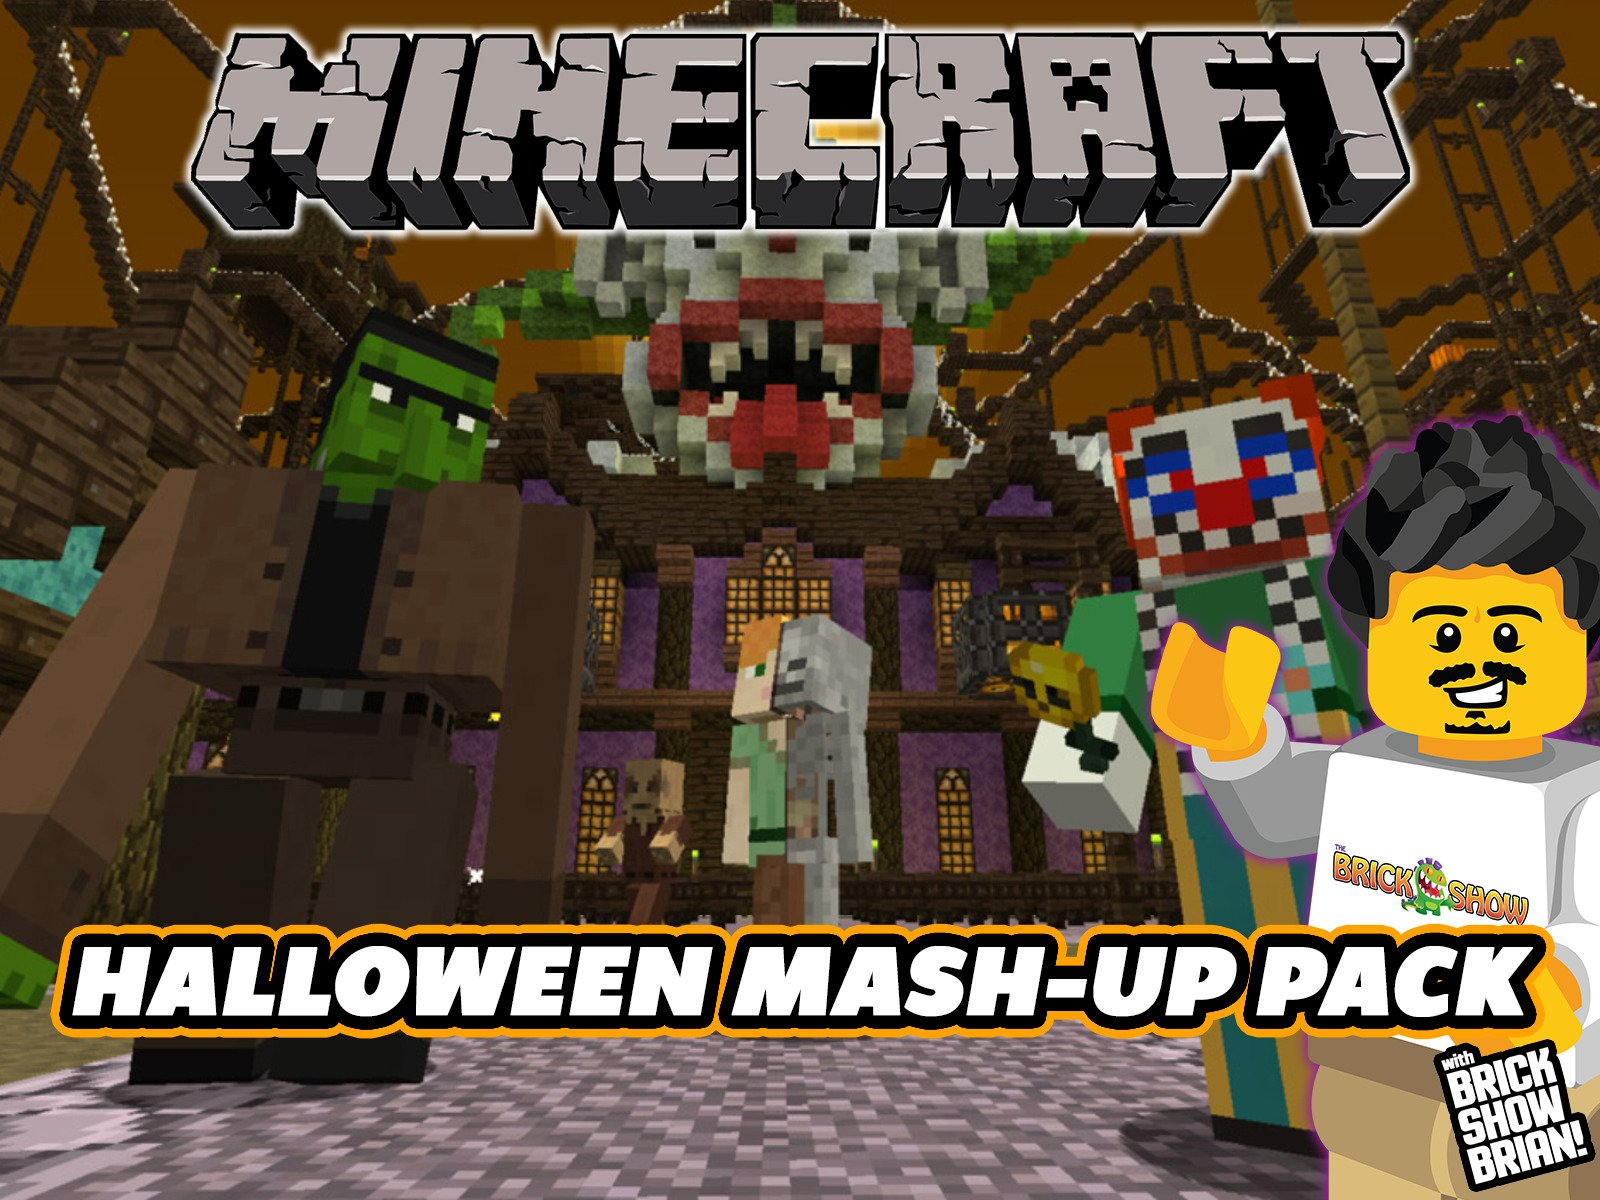 Clip: Minecraft Halloween Mash-Up Pack with brick Show Brian - Season 1